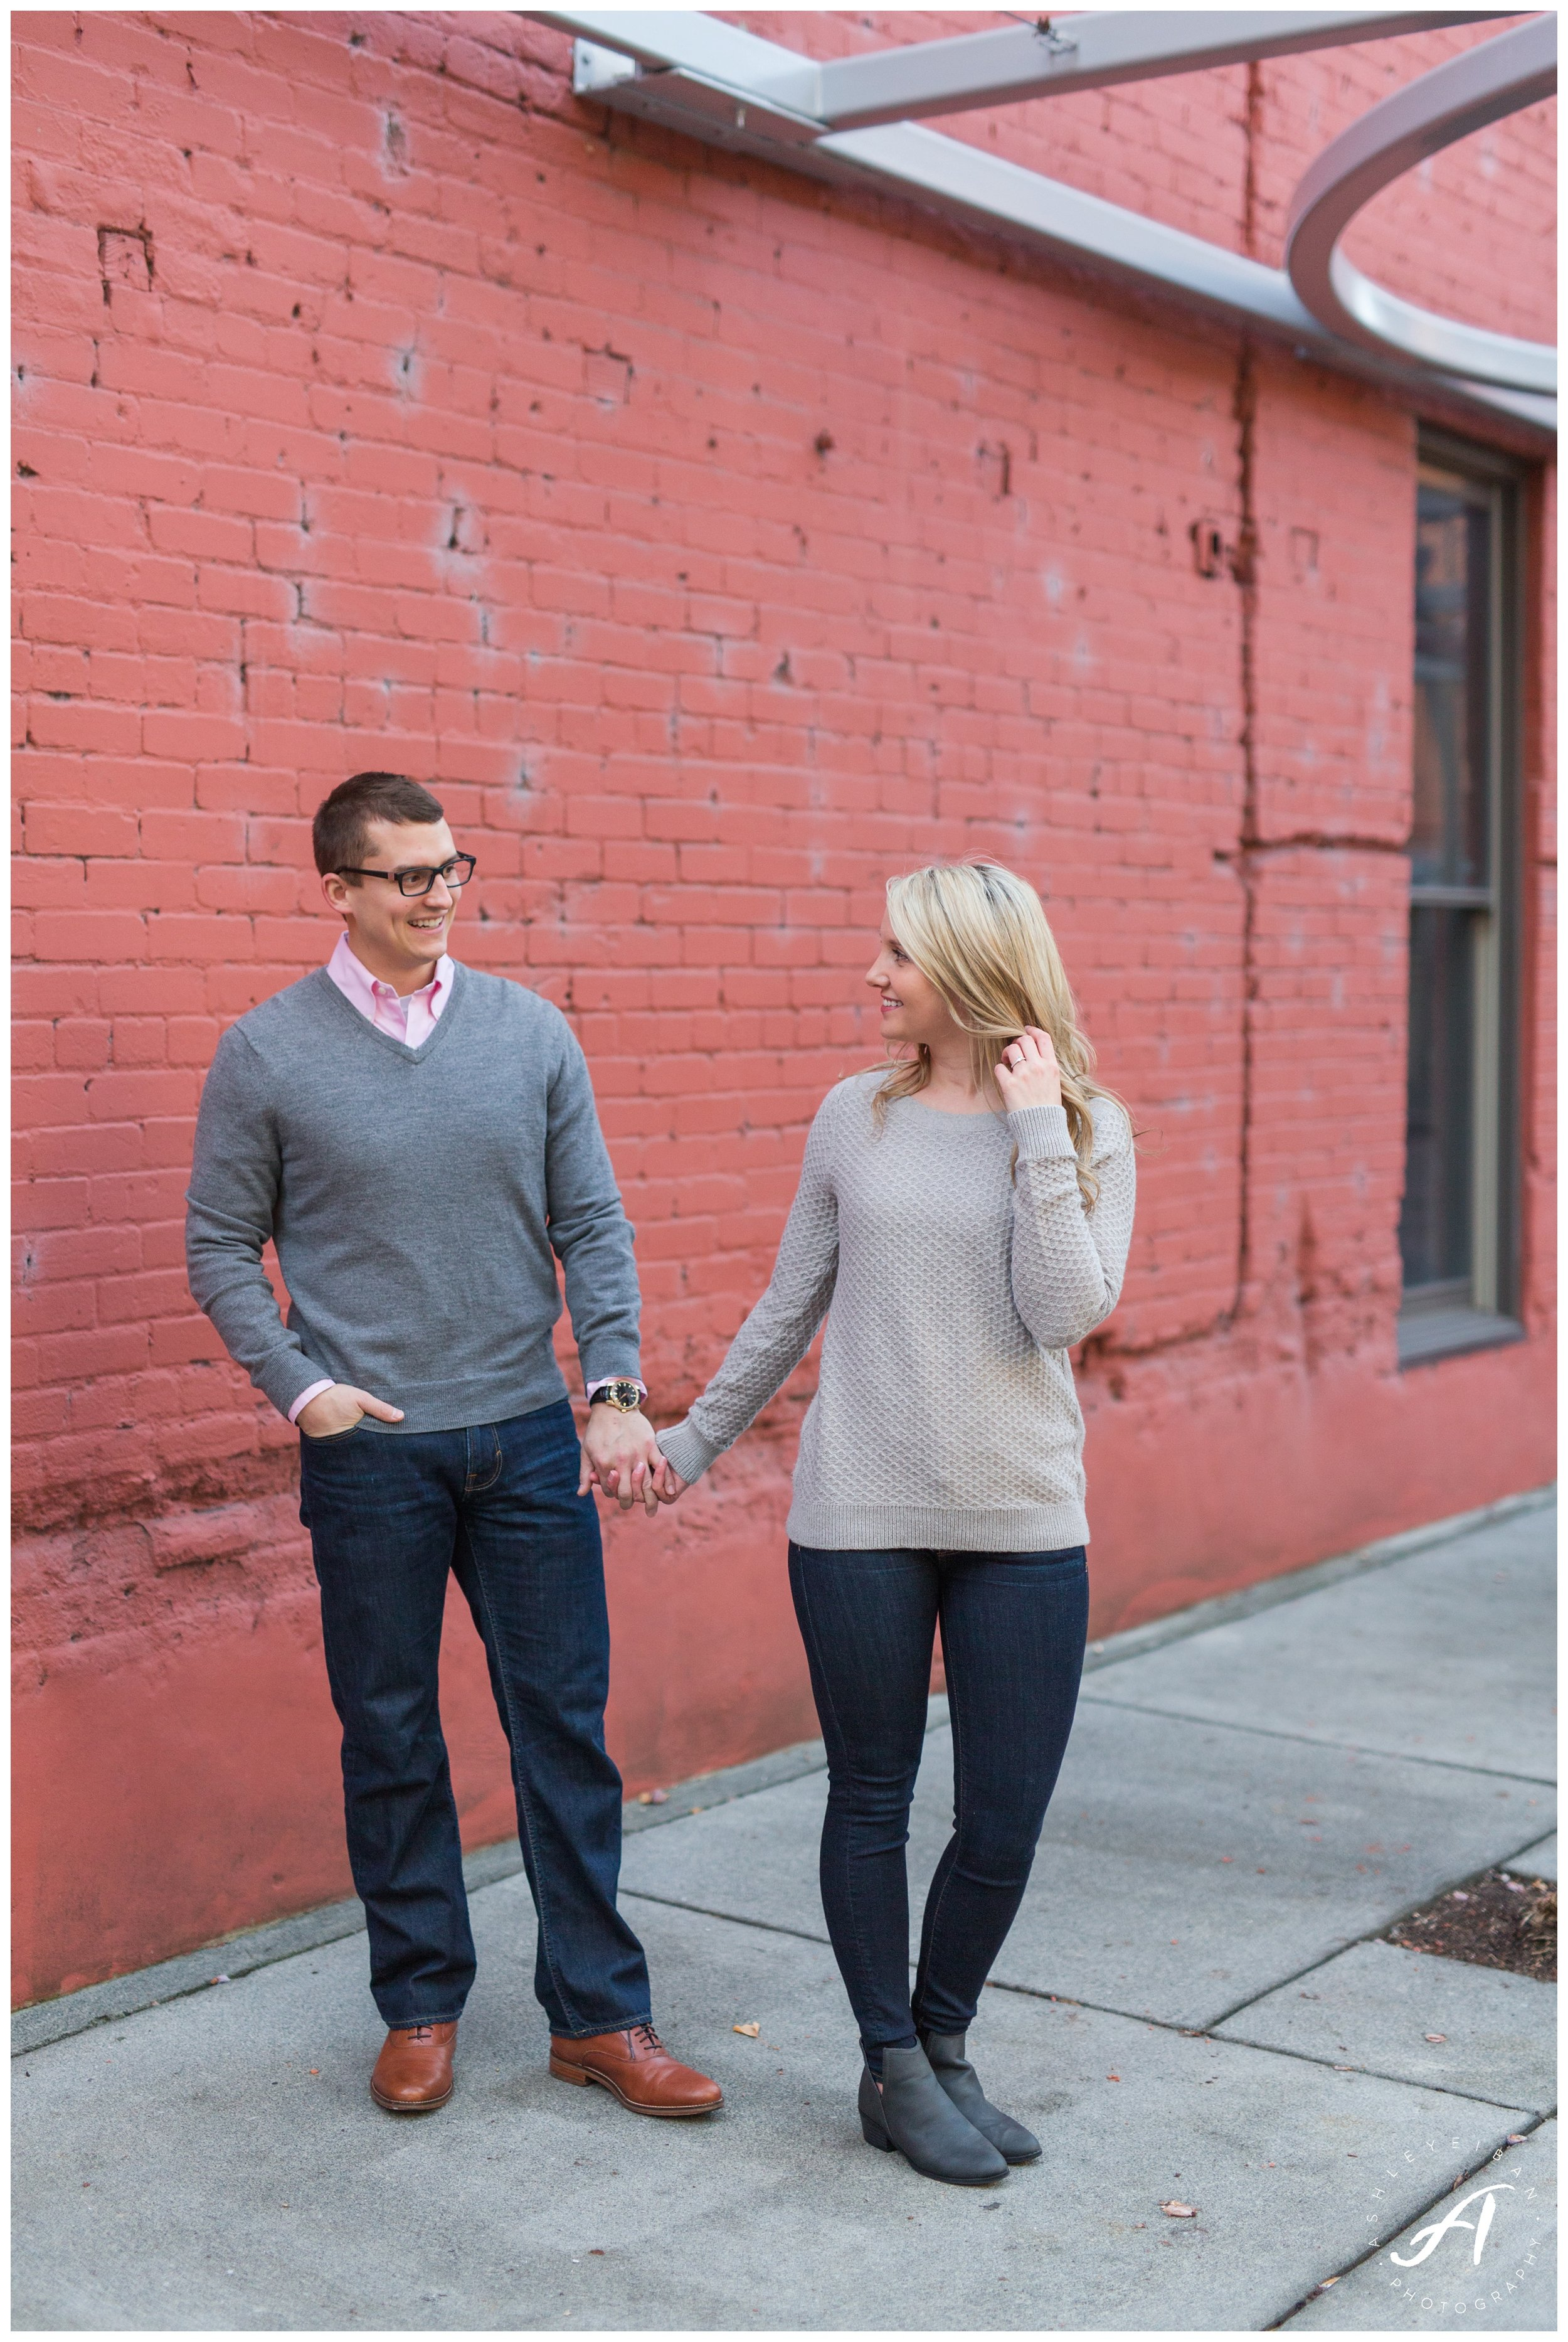 Downtown Roanoke Engagement Session || Central Virginia Wedding Photographer || www.ashleyeiban.com